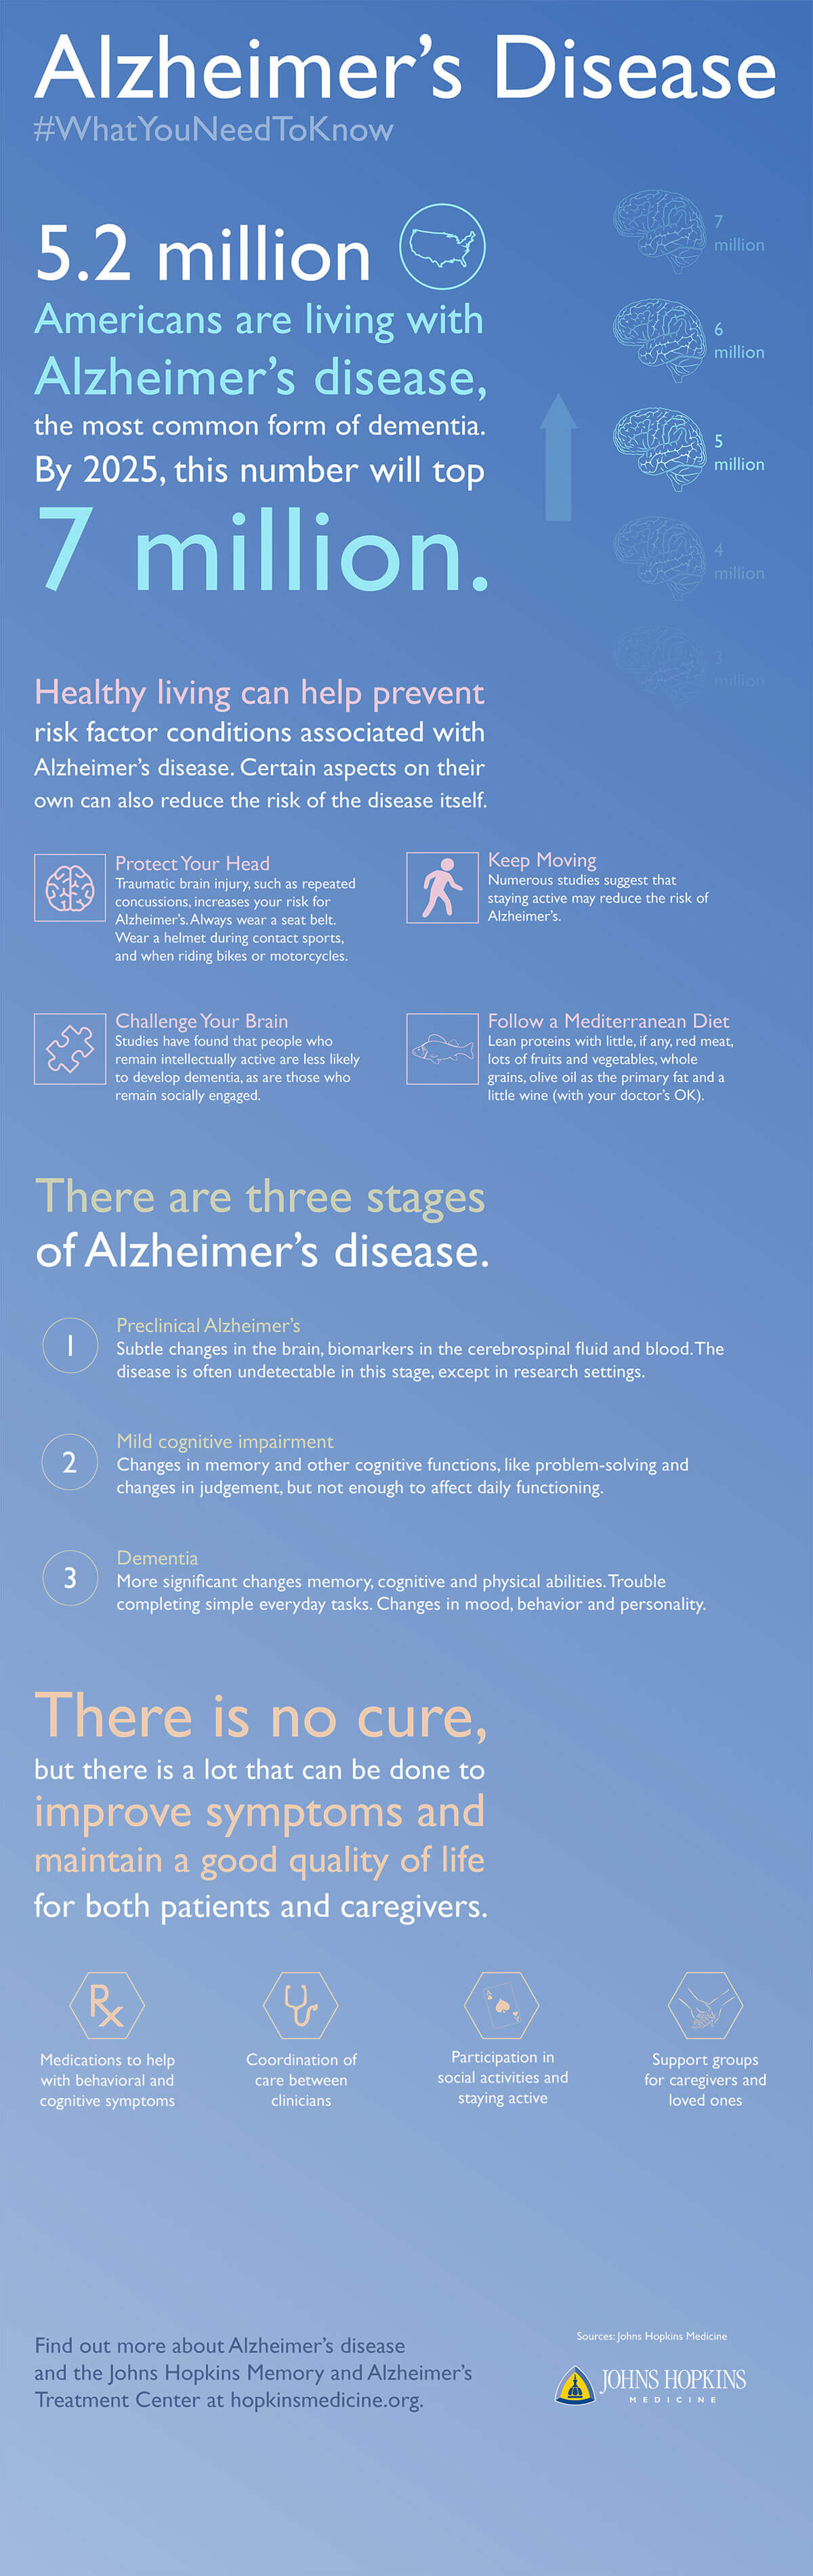 An infographic detailing risk factors, stages and treatment options of Alzheimer's disease.